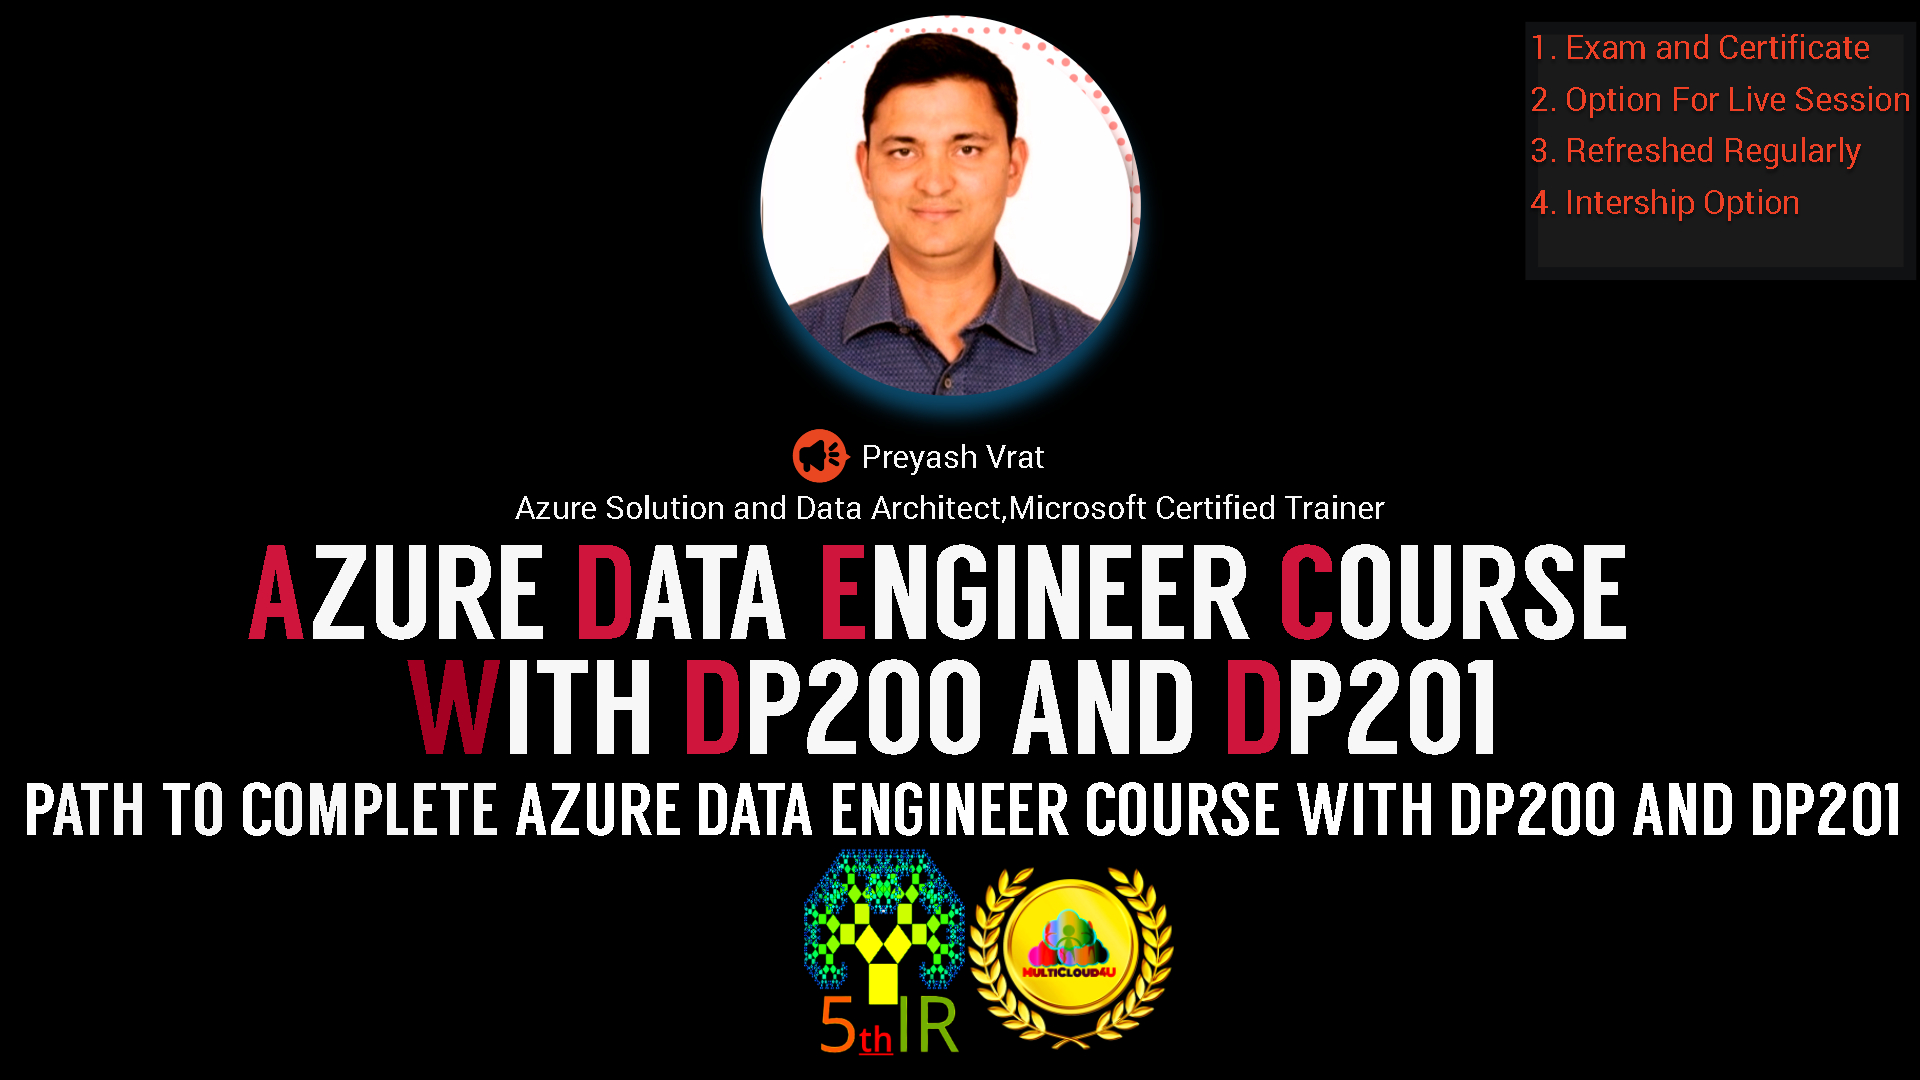 Azure Data Engineer Course With DP200 and DP201